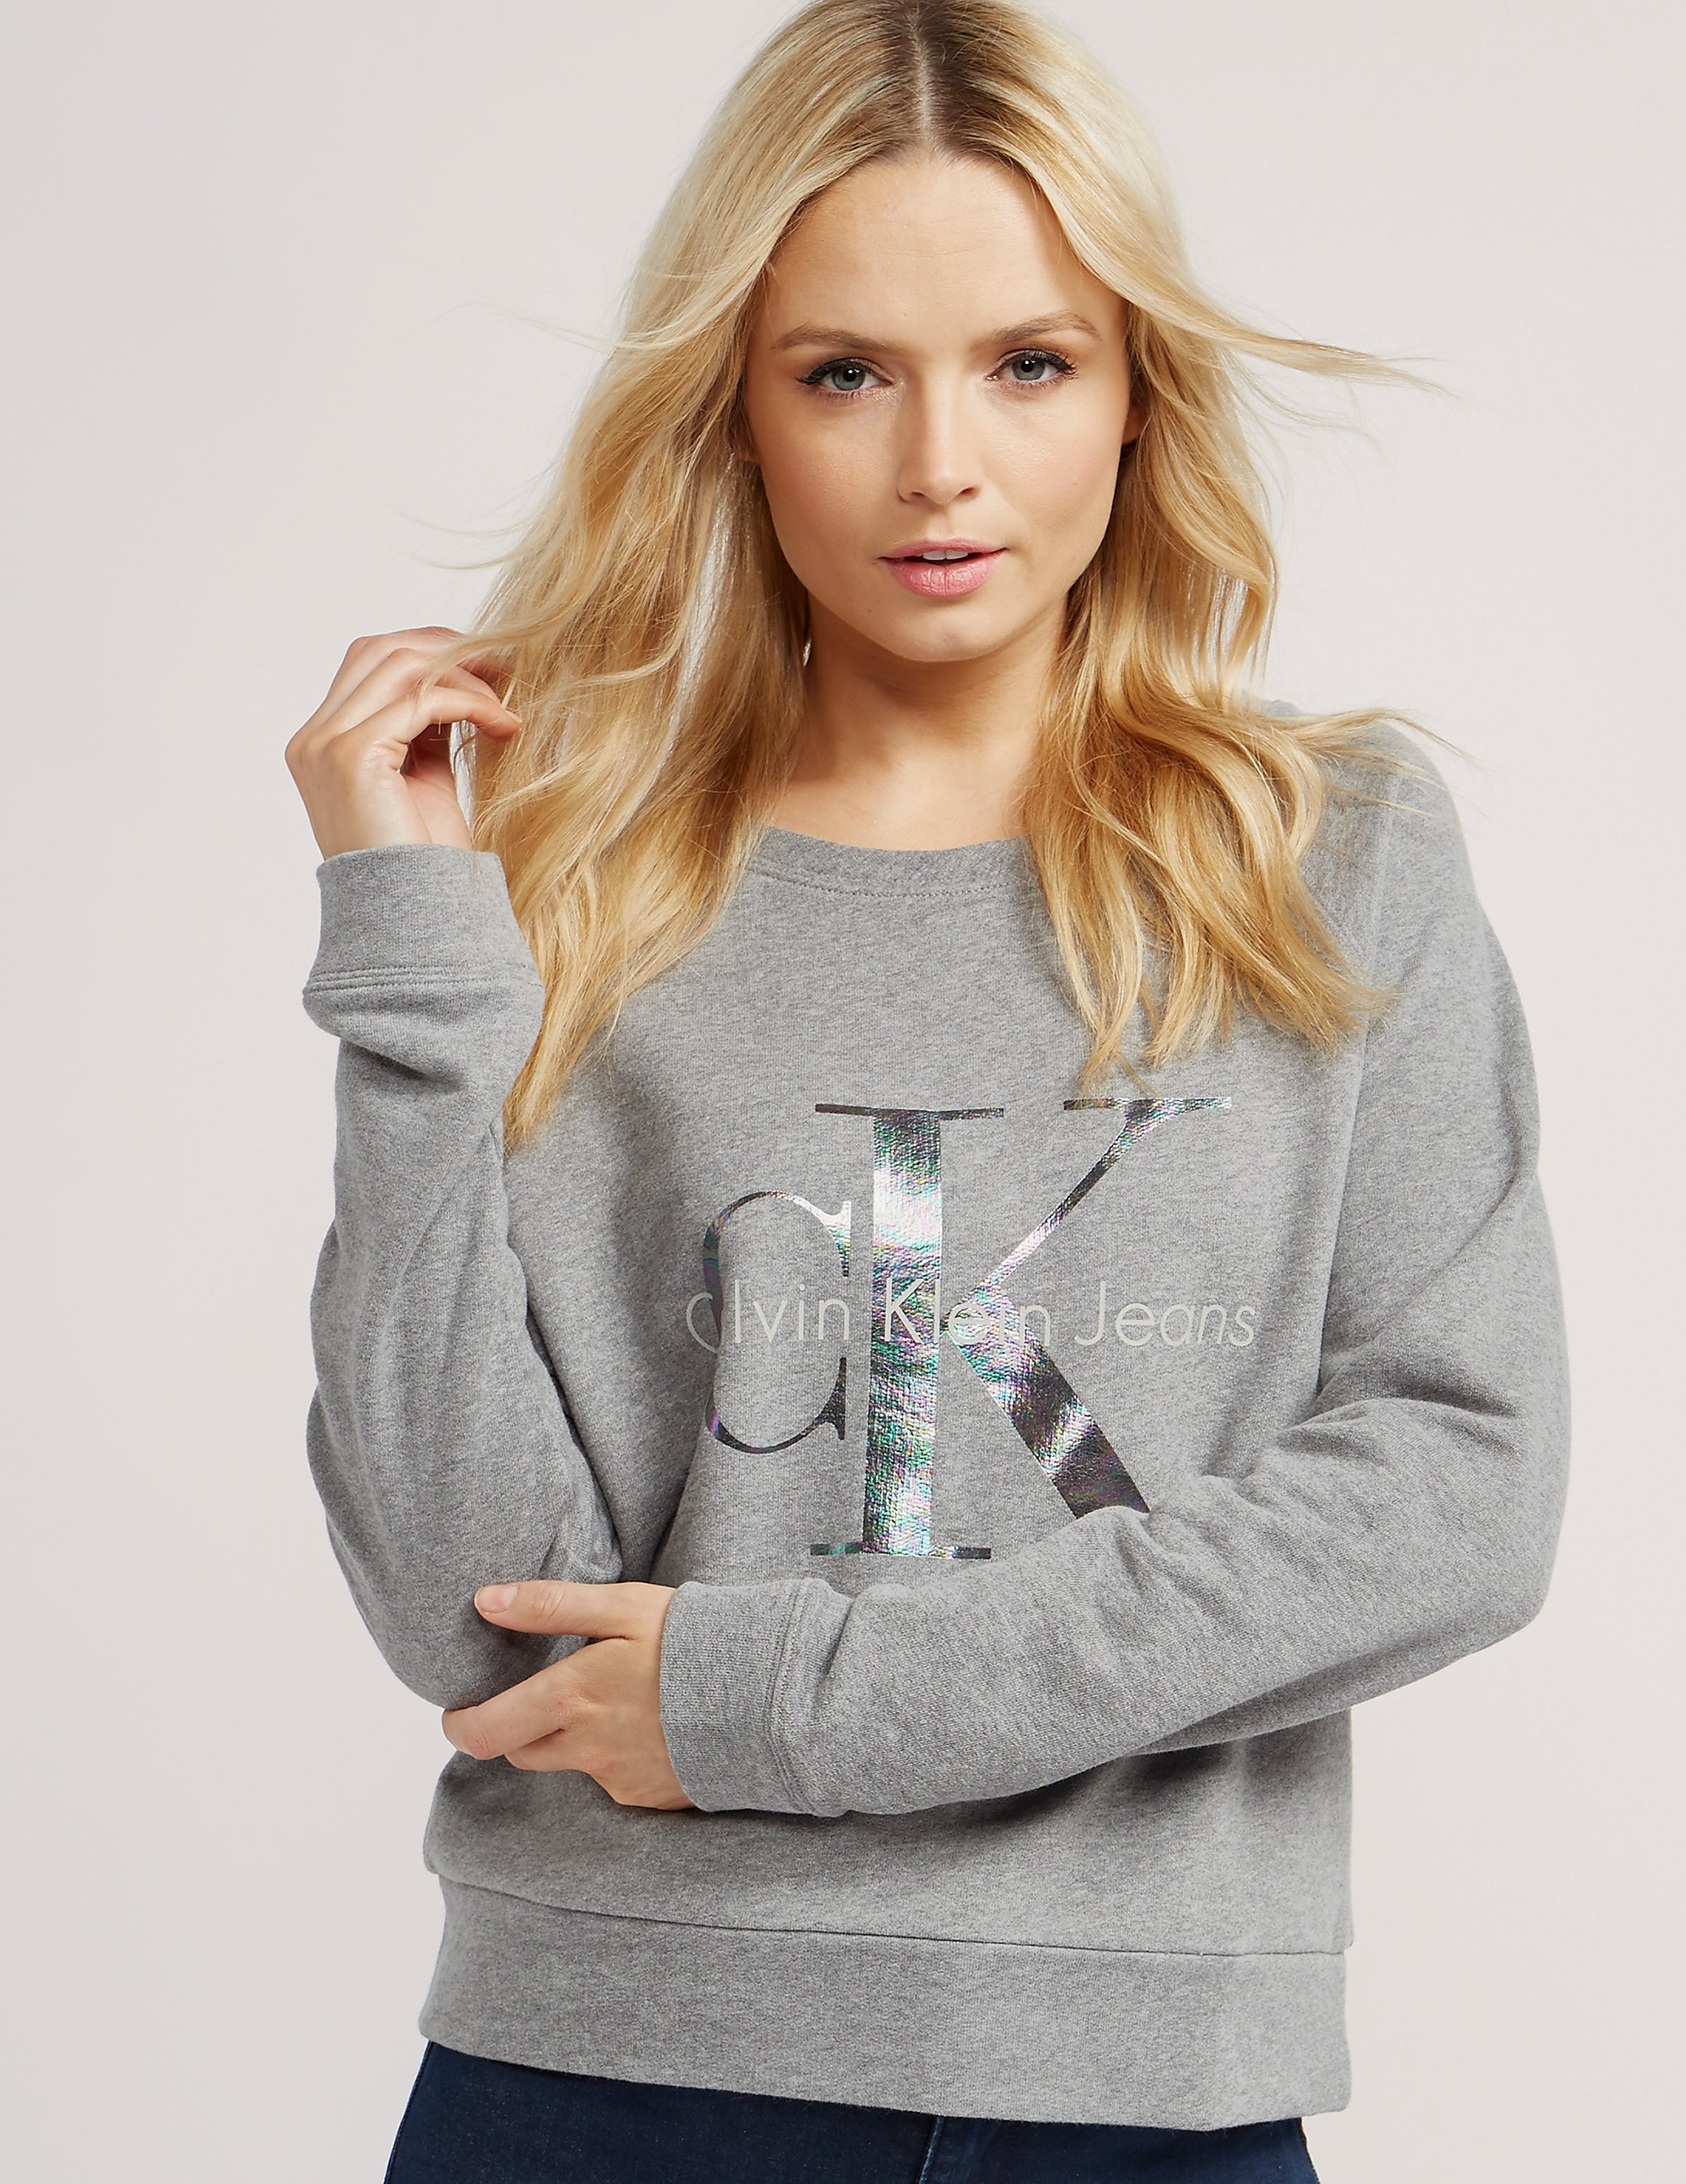 Calvin Klein True Icon Sweatshirt